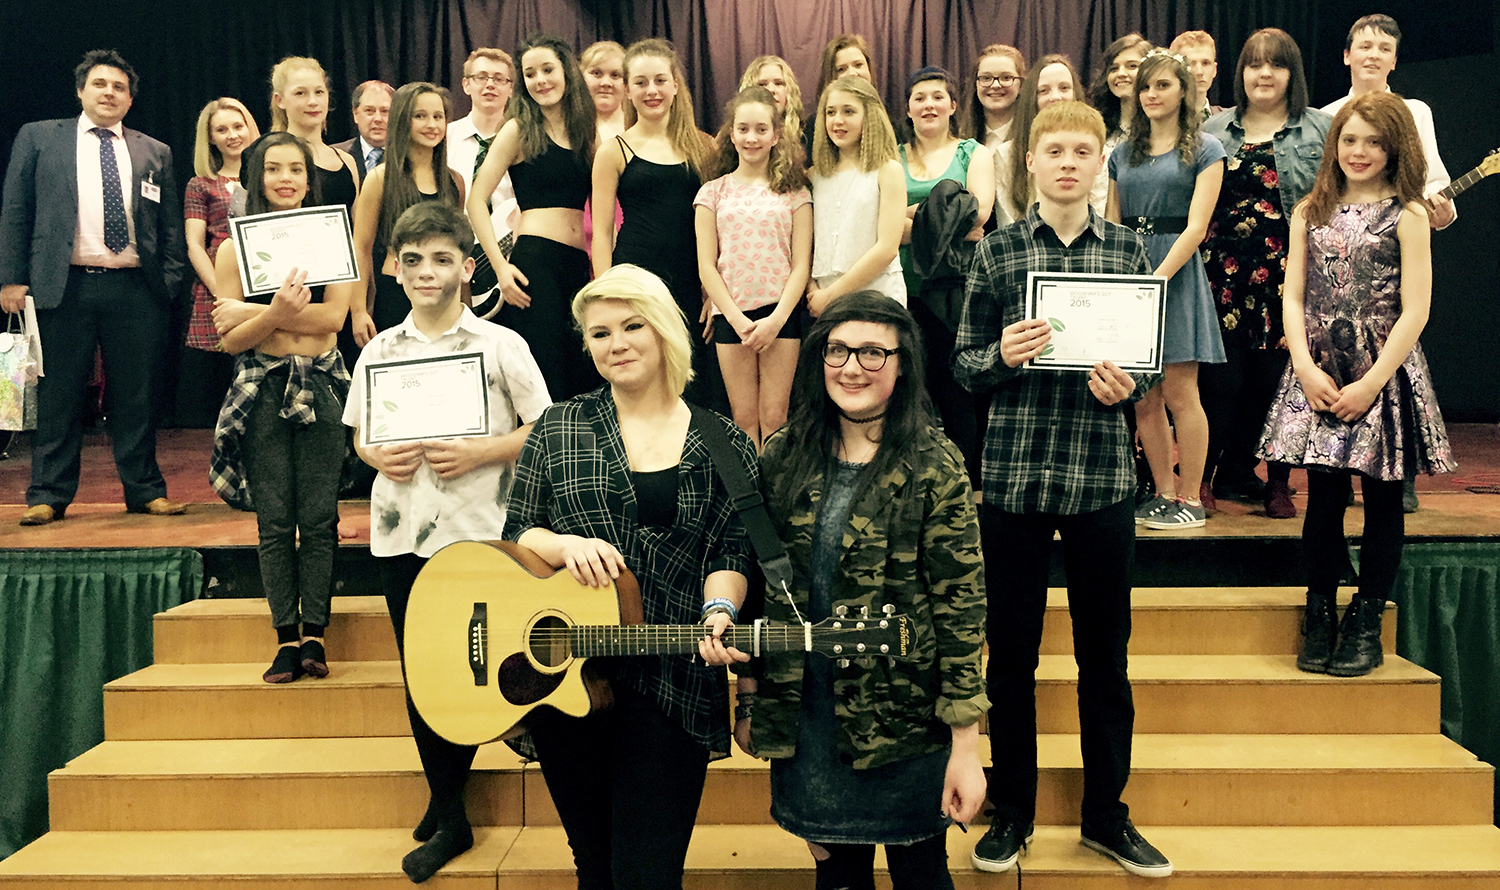 Woodham Academy Talent Show